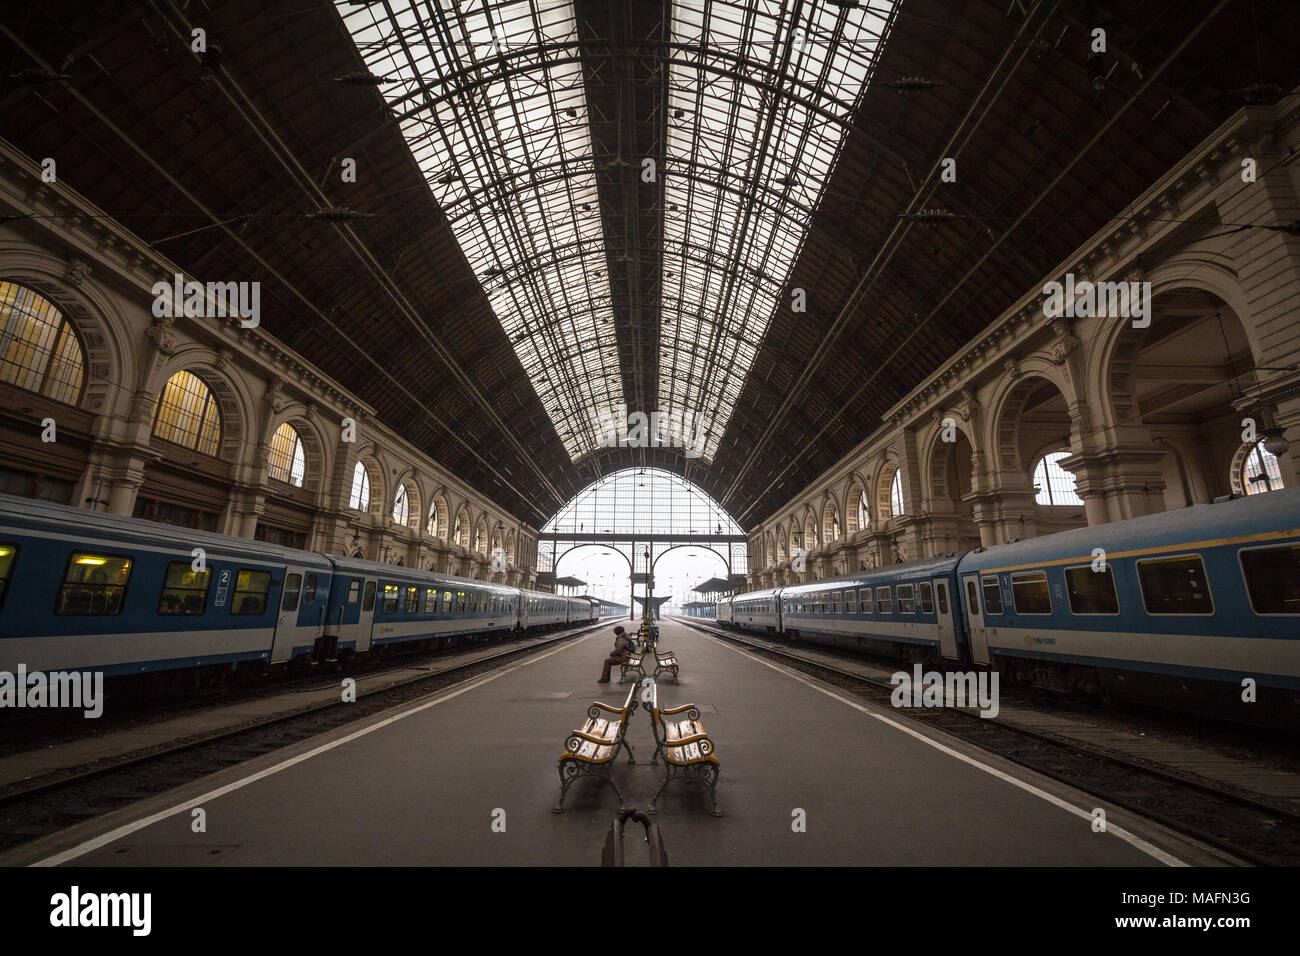 BUDAPEST, HUNGARY - DECEMBER 18, 2016: Trains departing from Budapest Keleti Palyaudvar train station. This station is the biggest of Hungary,  and a  - Stock Image